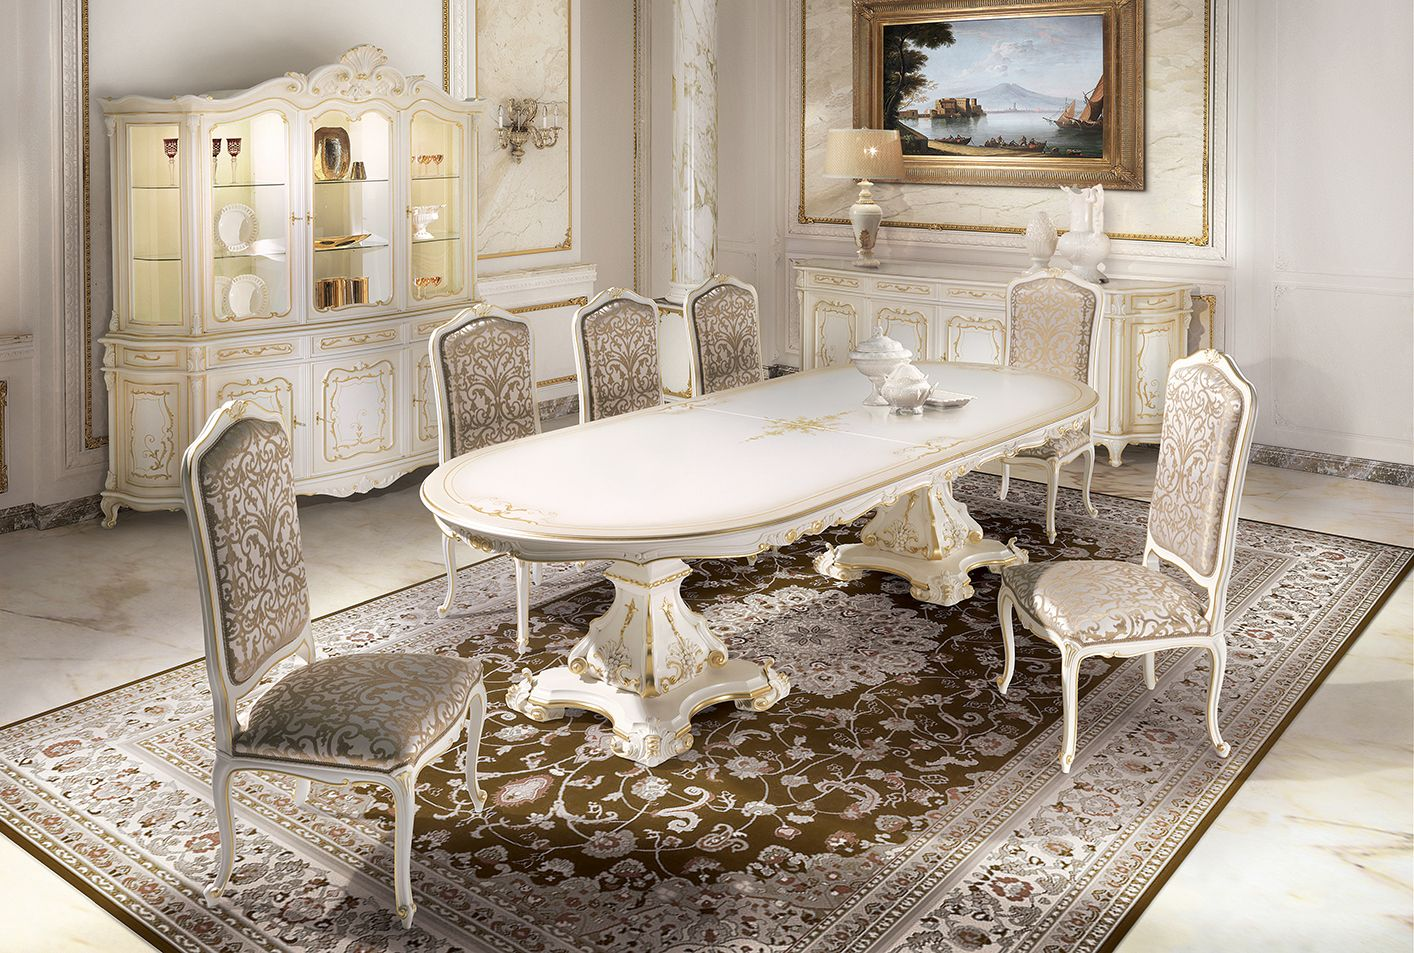 luxury dining room sets. CANALETTO Italian Luxury Dining Room Furniture Sets E